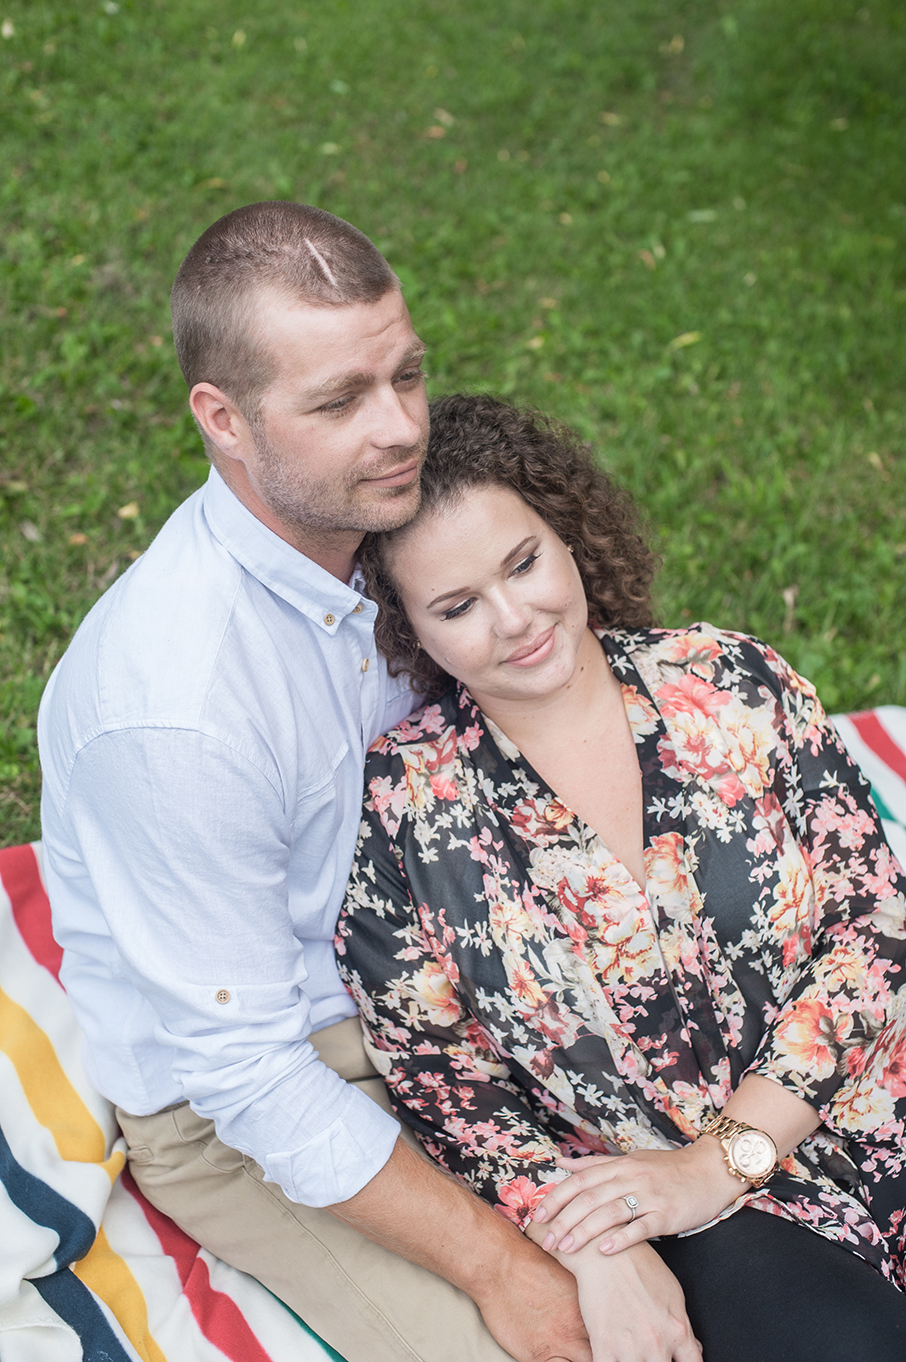 Holly&Rob_EngagementSession-66.jpg